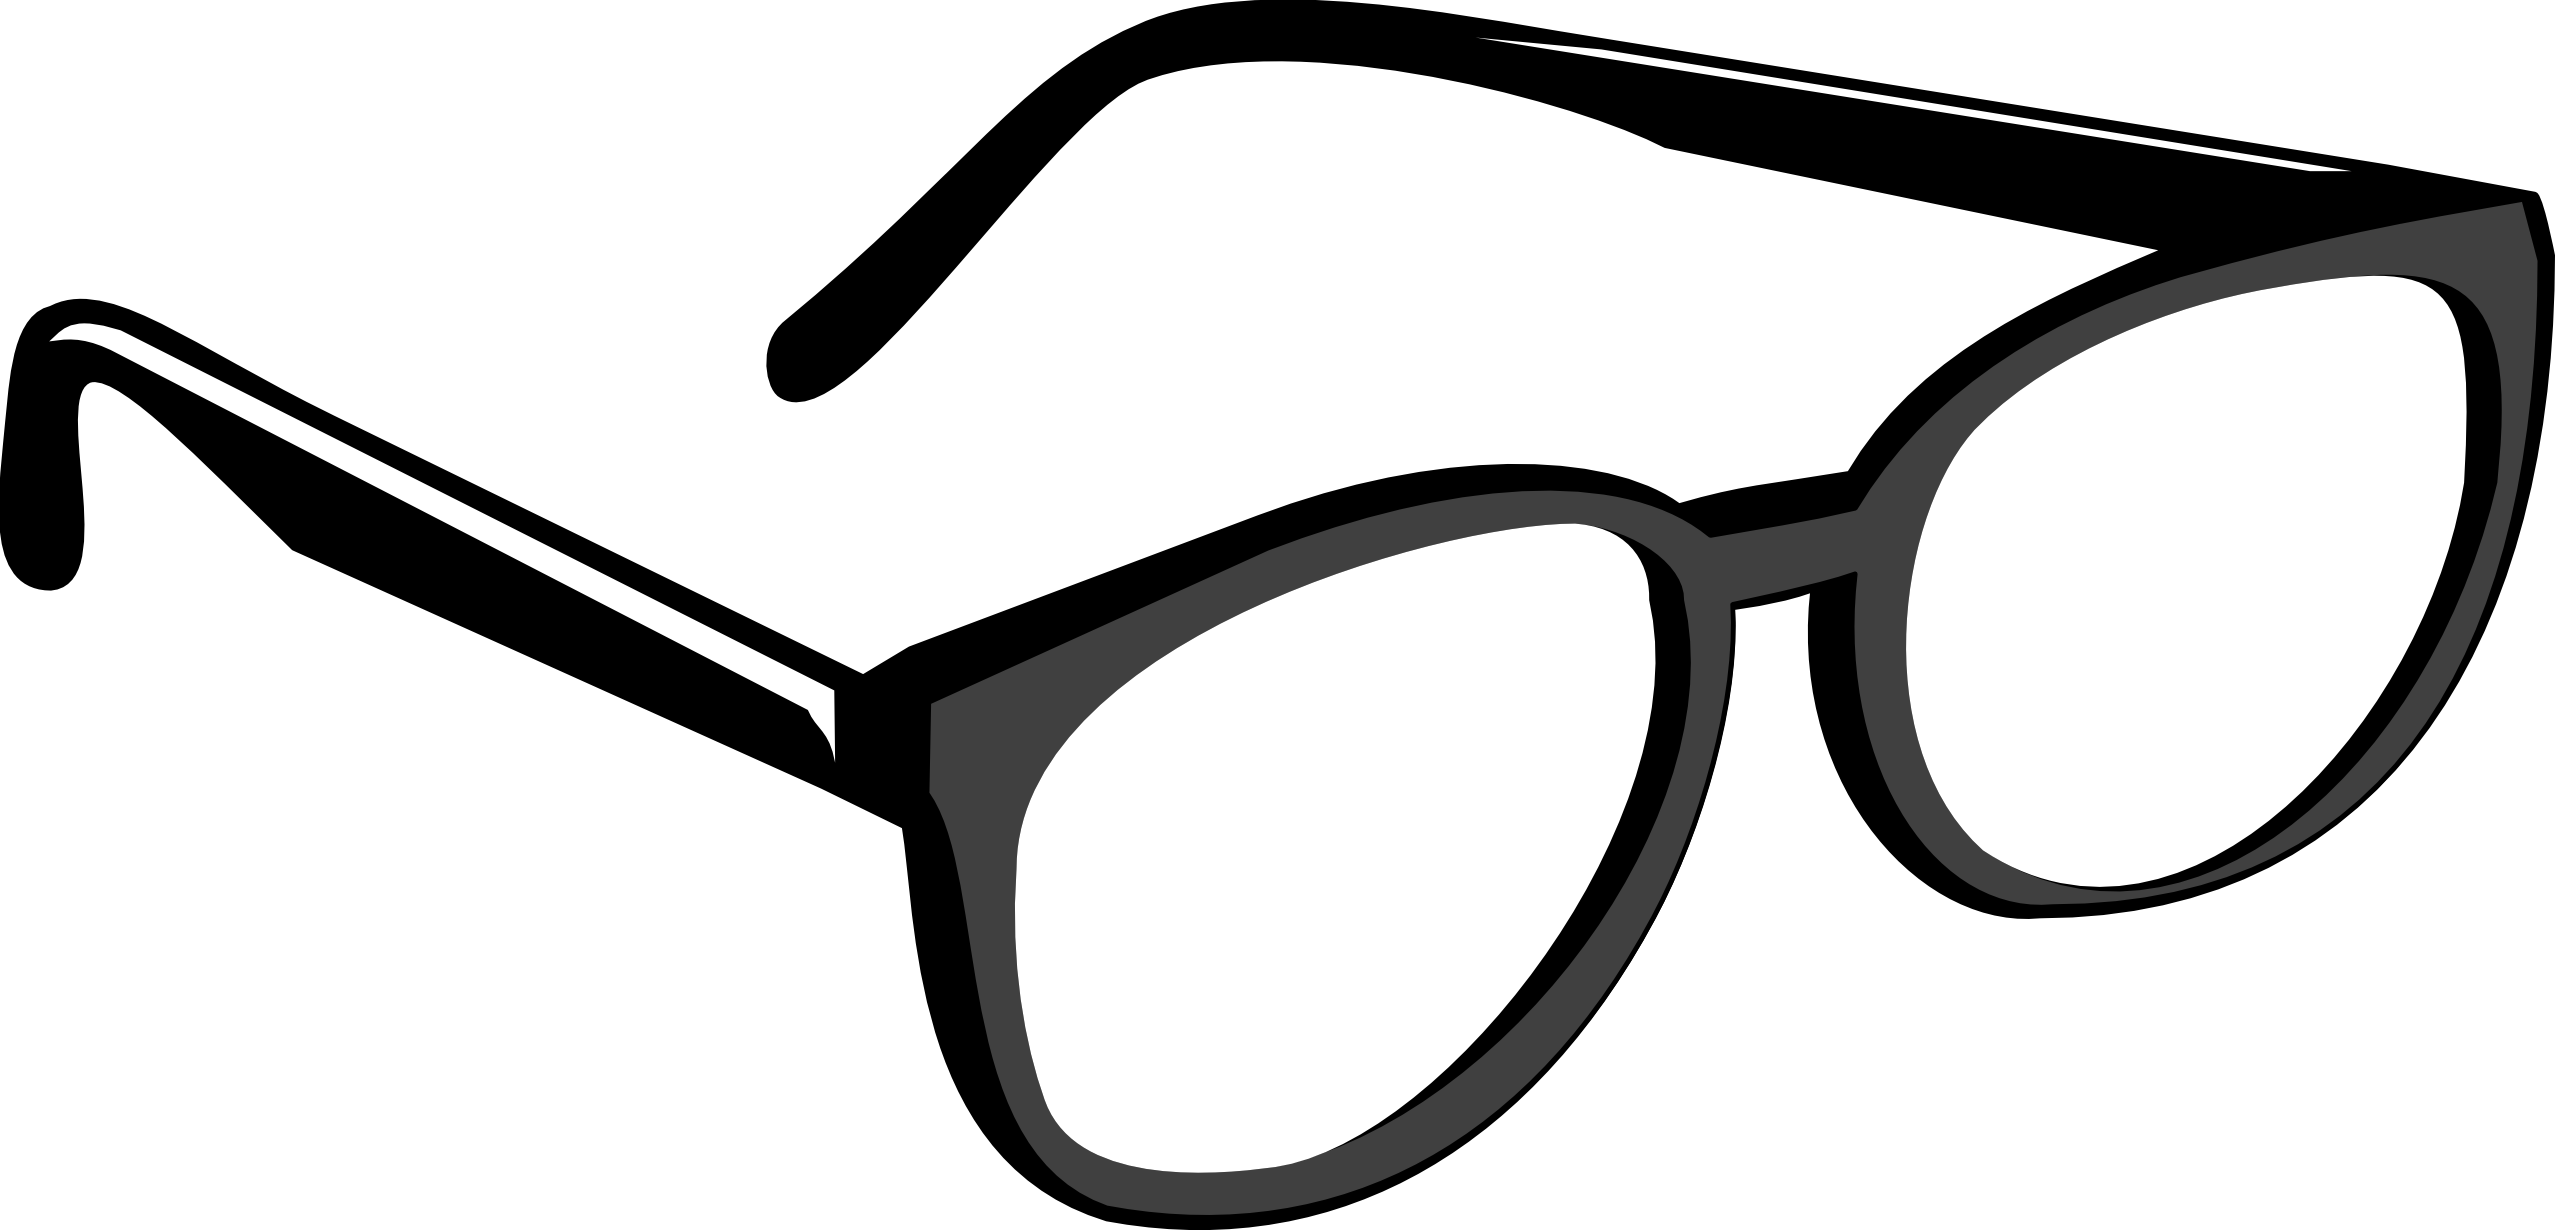 Real glasses clipart jpg free download Glasses Clipart Black And White | Clipart Panda - Free Clipart Images jpg free download